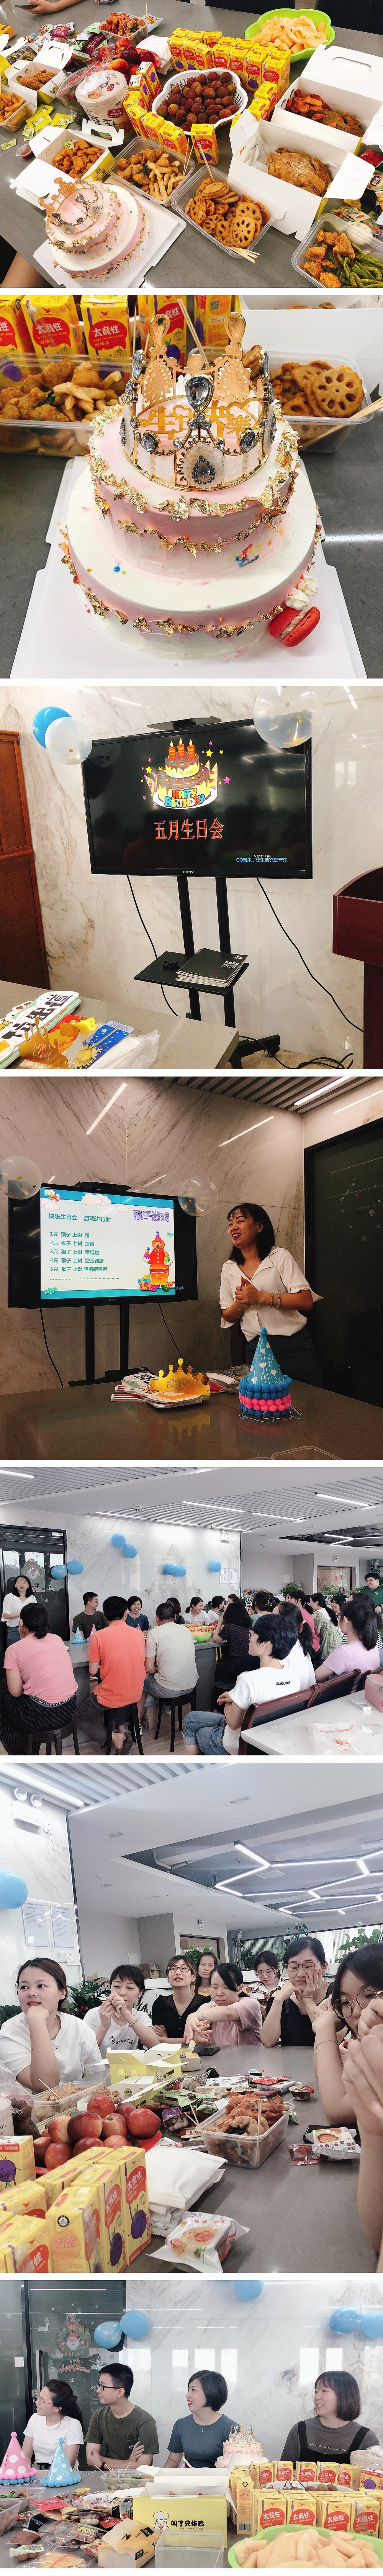 YEYANG STONE Employees Birthday Party In May 2021